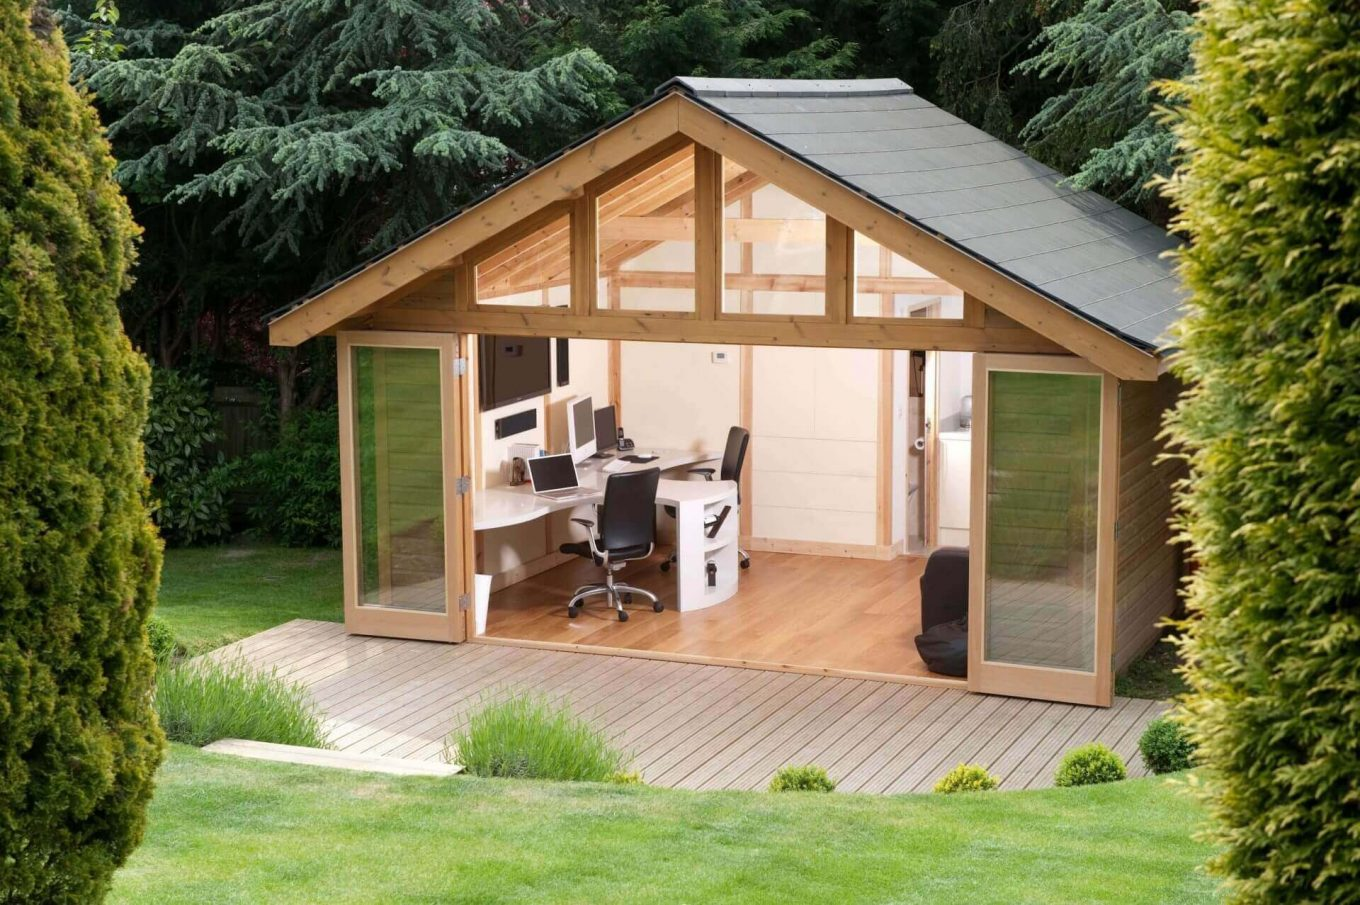 3 Reasons To Invest In A Garden Shed